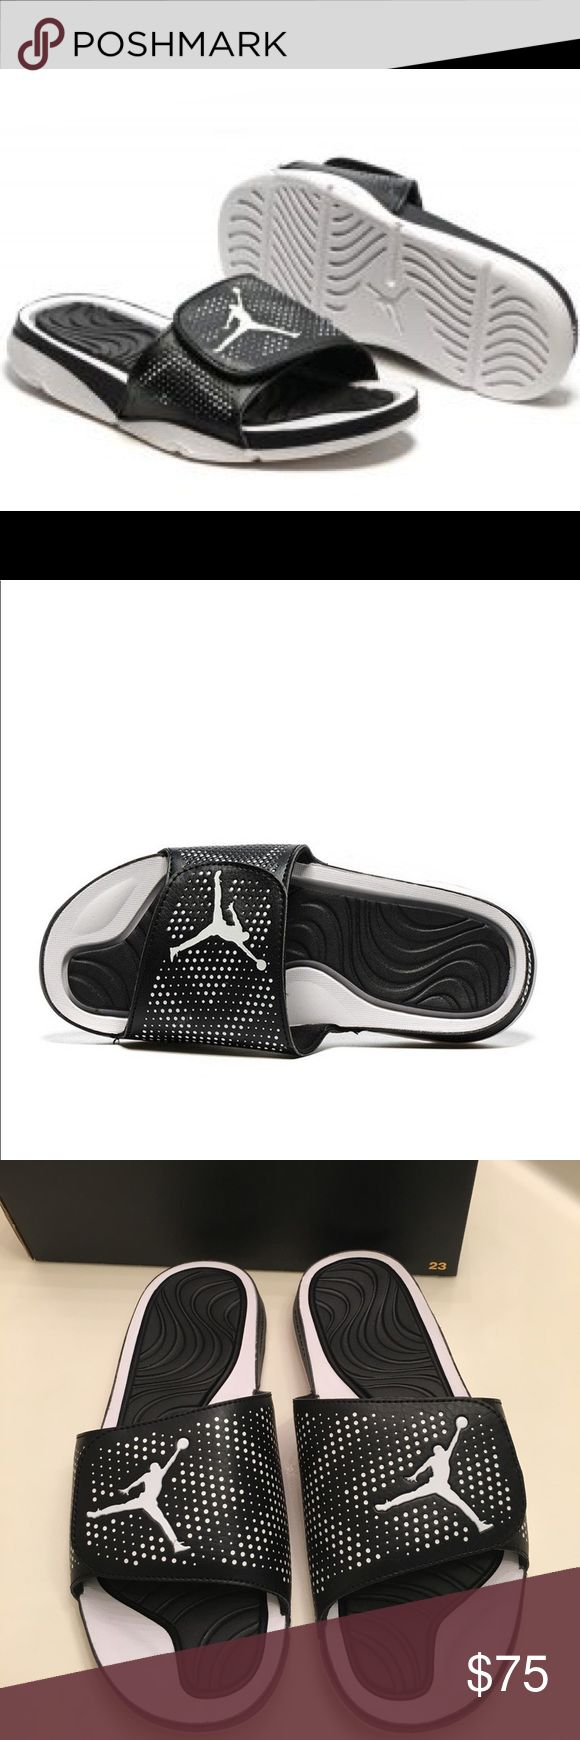 Nike Jordan Hydro 5 Sandal Slides Slippers Synthetic Rubber sole With an adjustable fit and a massaging footbed, the slide is the perfect way to unwind and recuperate after a hard-fought battle Signature Jordan details add a sleek look to these post-game essentials TPR footbed designed to massage the feet in key performance areas, improving recovery Lightweight foam Phylon for added cushion and support Jordan Shoes Sandals & Flip-Flops